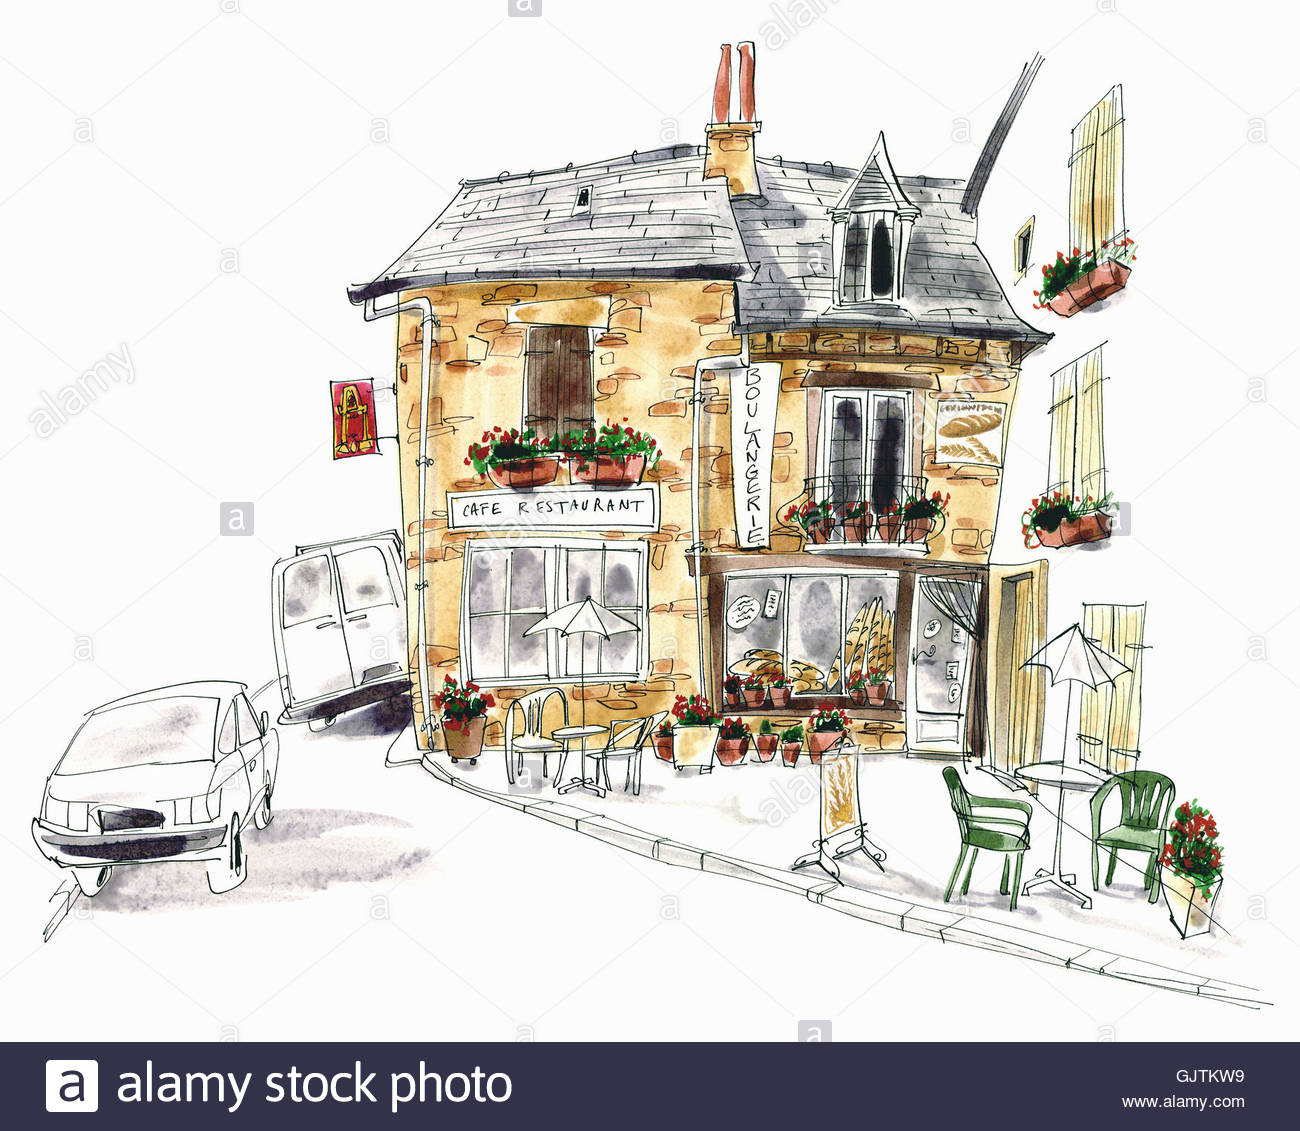 Pavement cafe and boulangerie, france - Stock Image